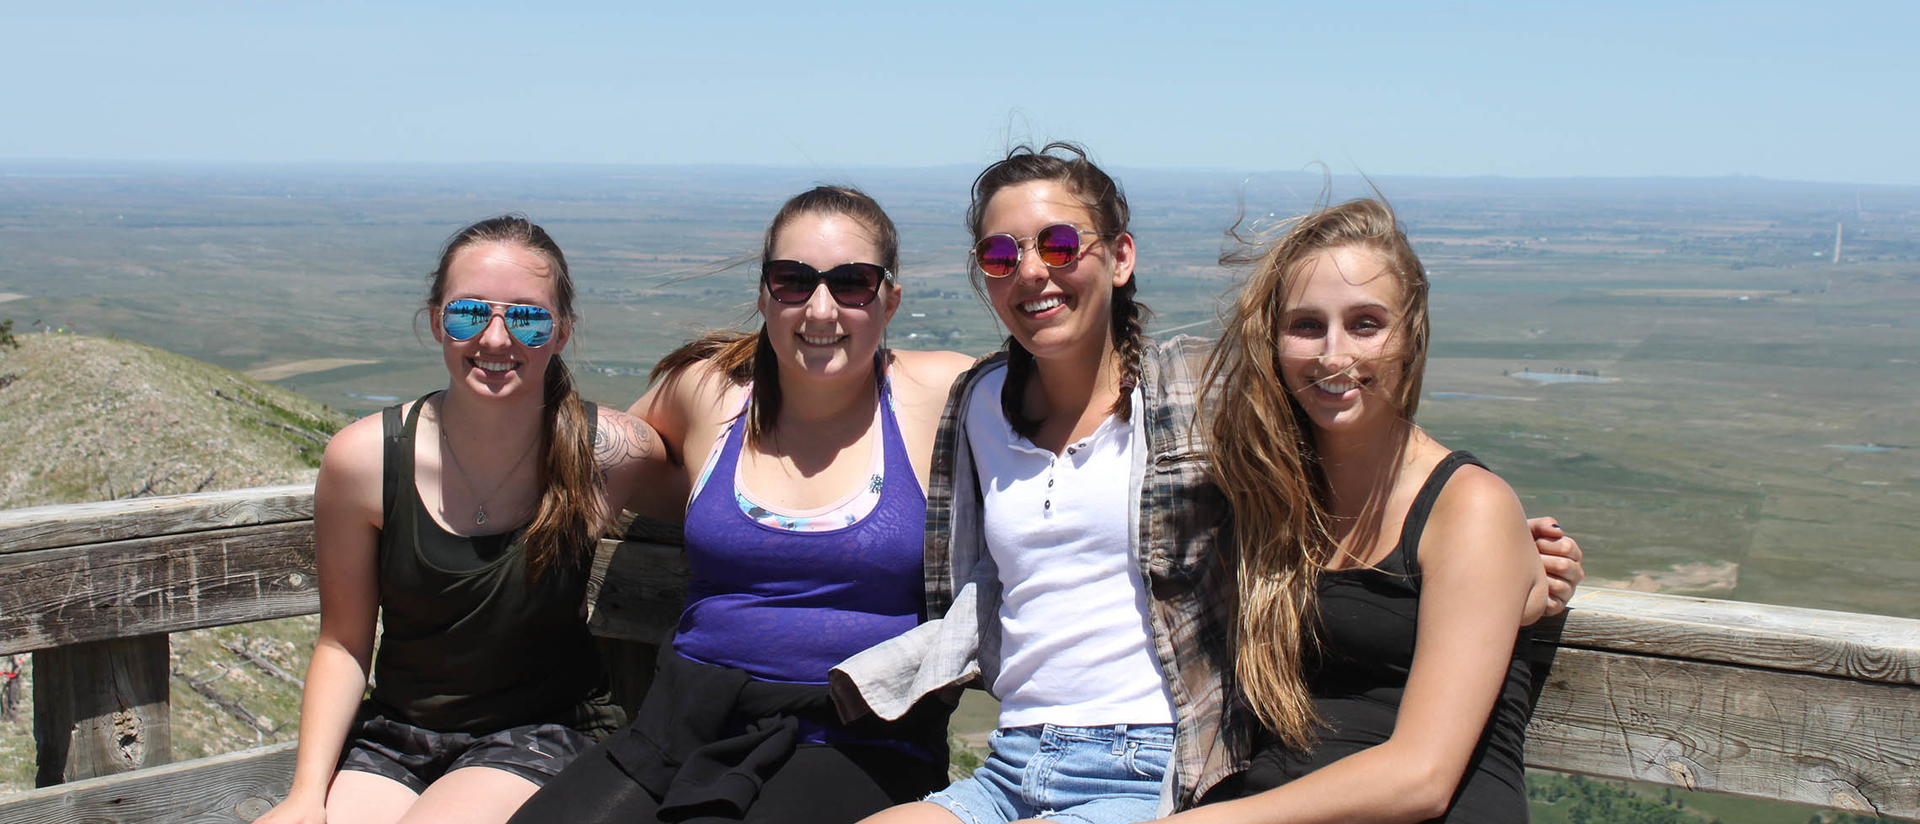 Taylor Younkle and other AIS students on the Pine Ridge immersion experience. Pictured at Badlands National Park.